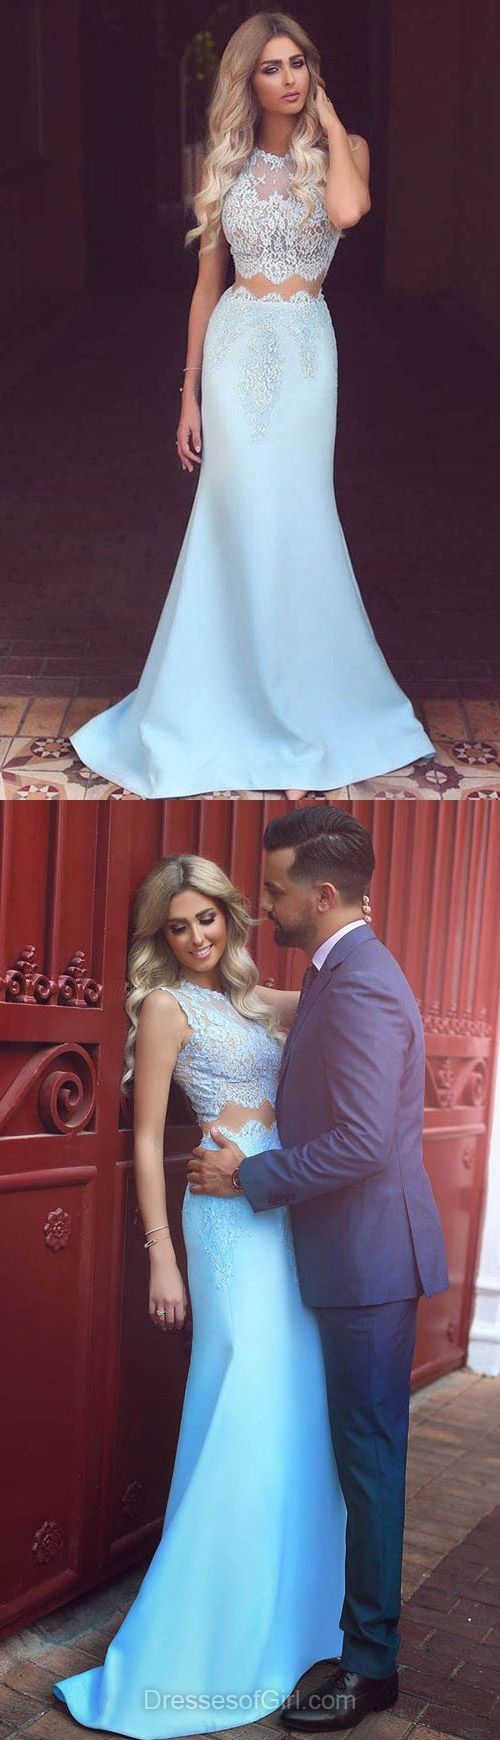 Trumpet/Mermaid Lace Prom Dresses, Scoop Neck Satin Tulle Party Dresses, Sweep Train with Appliques Formal Evening Gowns